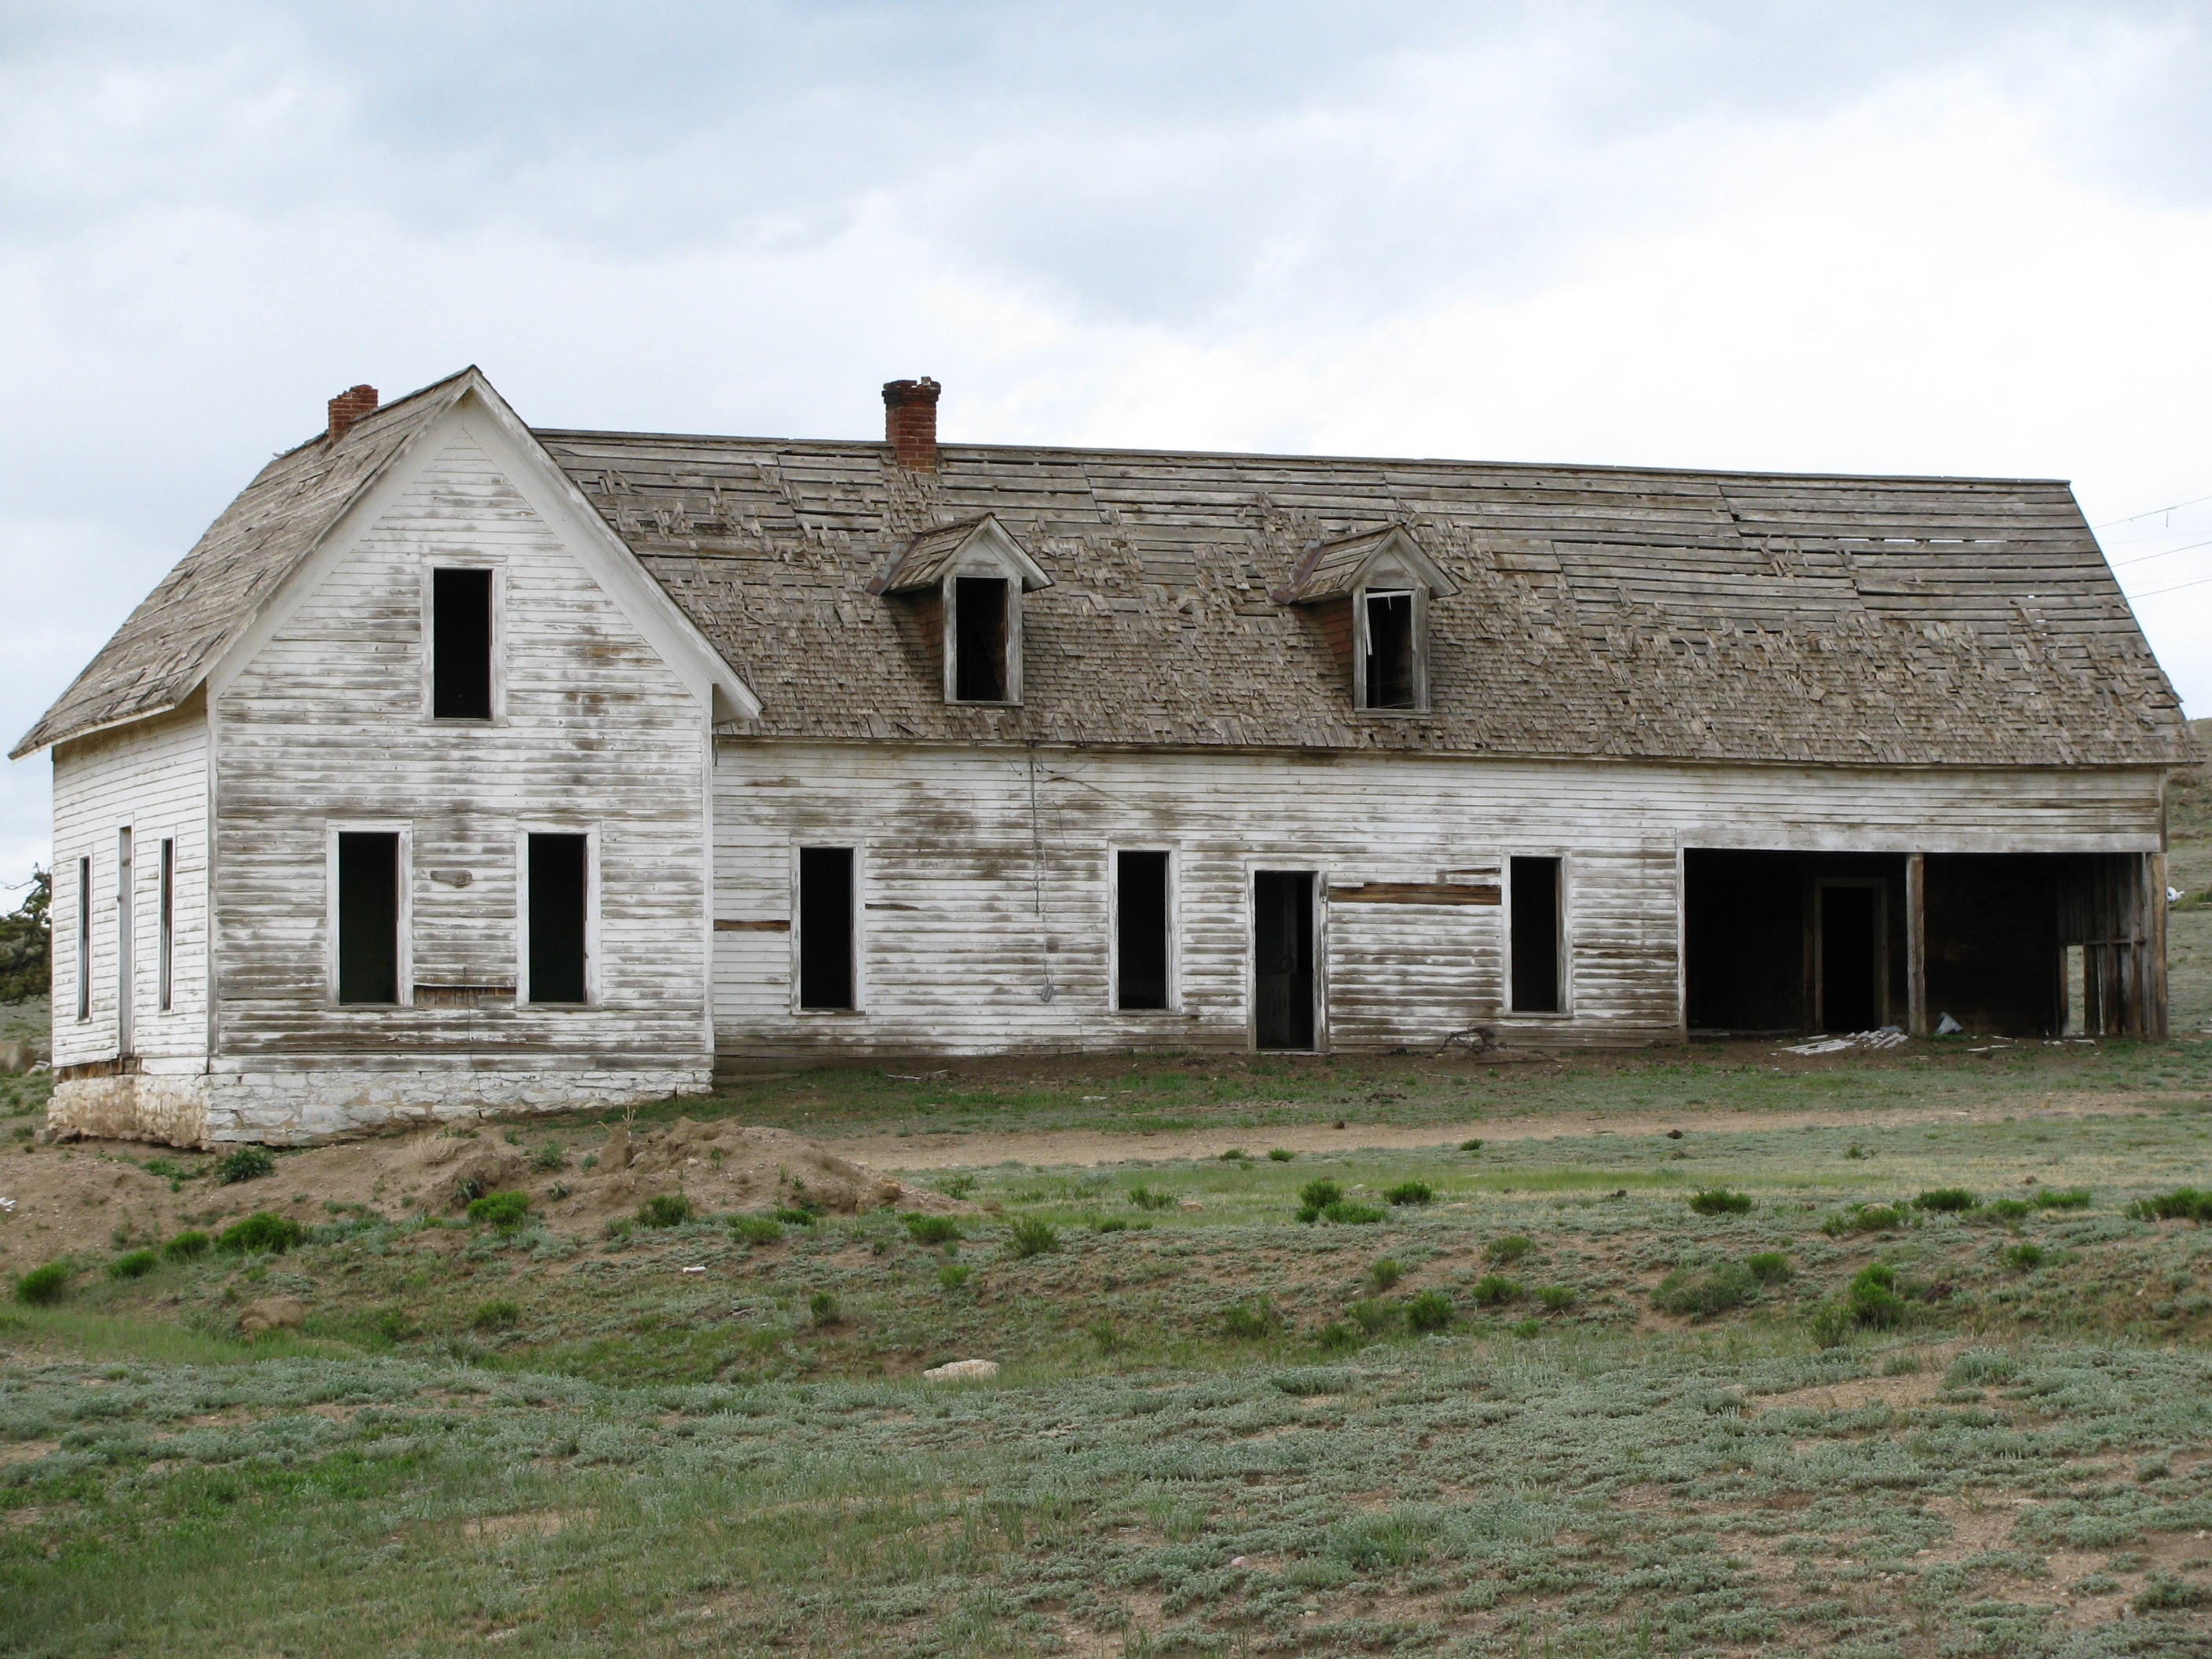 Old abandoned rural farm house with white chipped paint